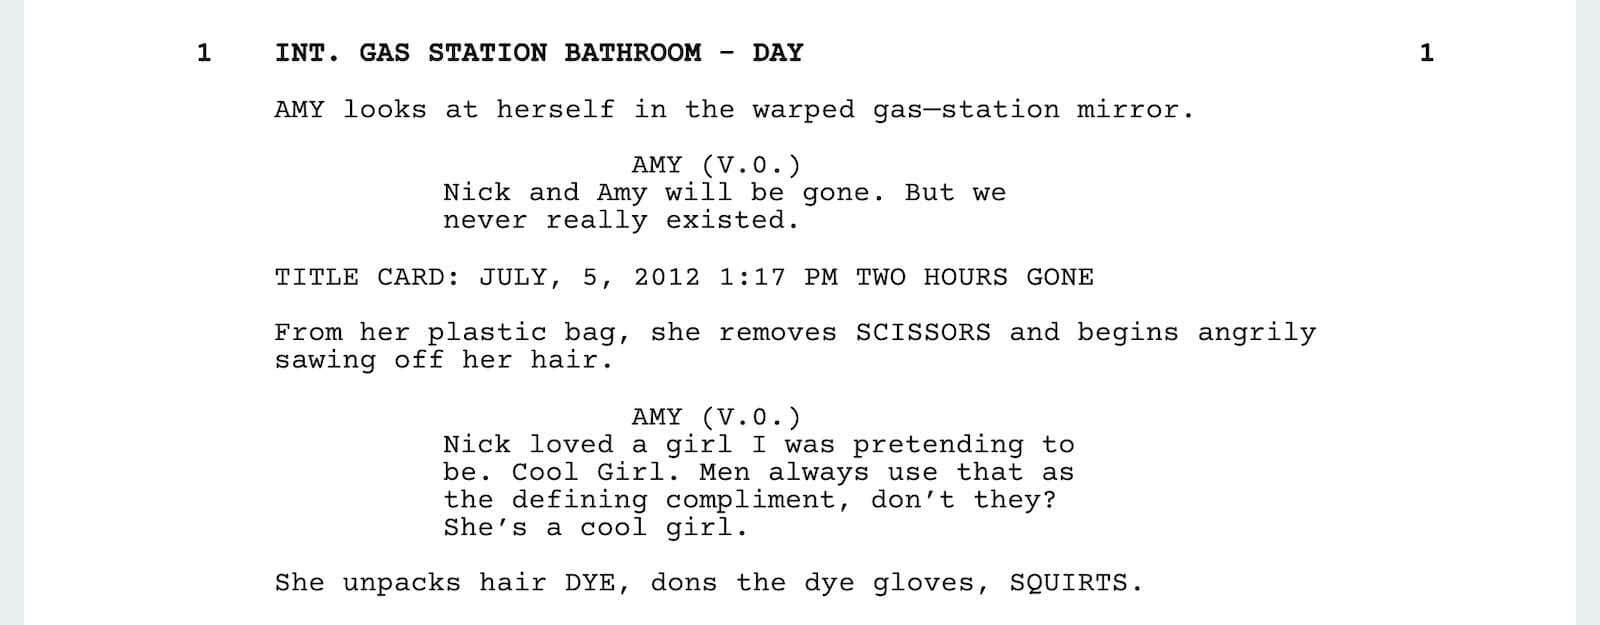 Gone Girl Script Teardown - Cool Girl Scene - StudioBinder